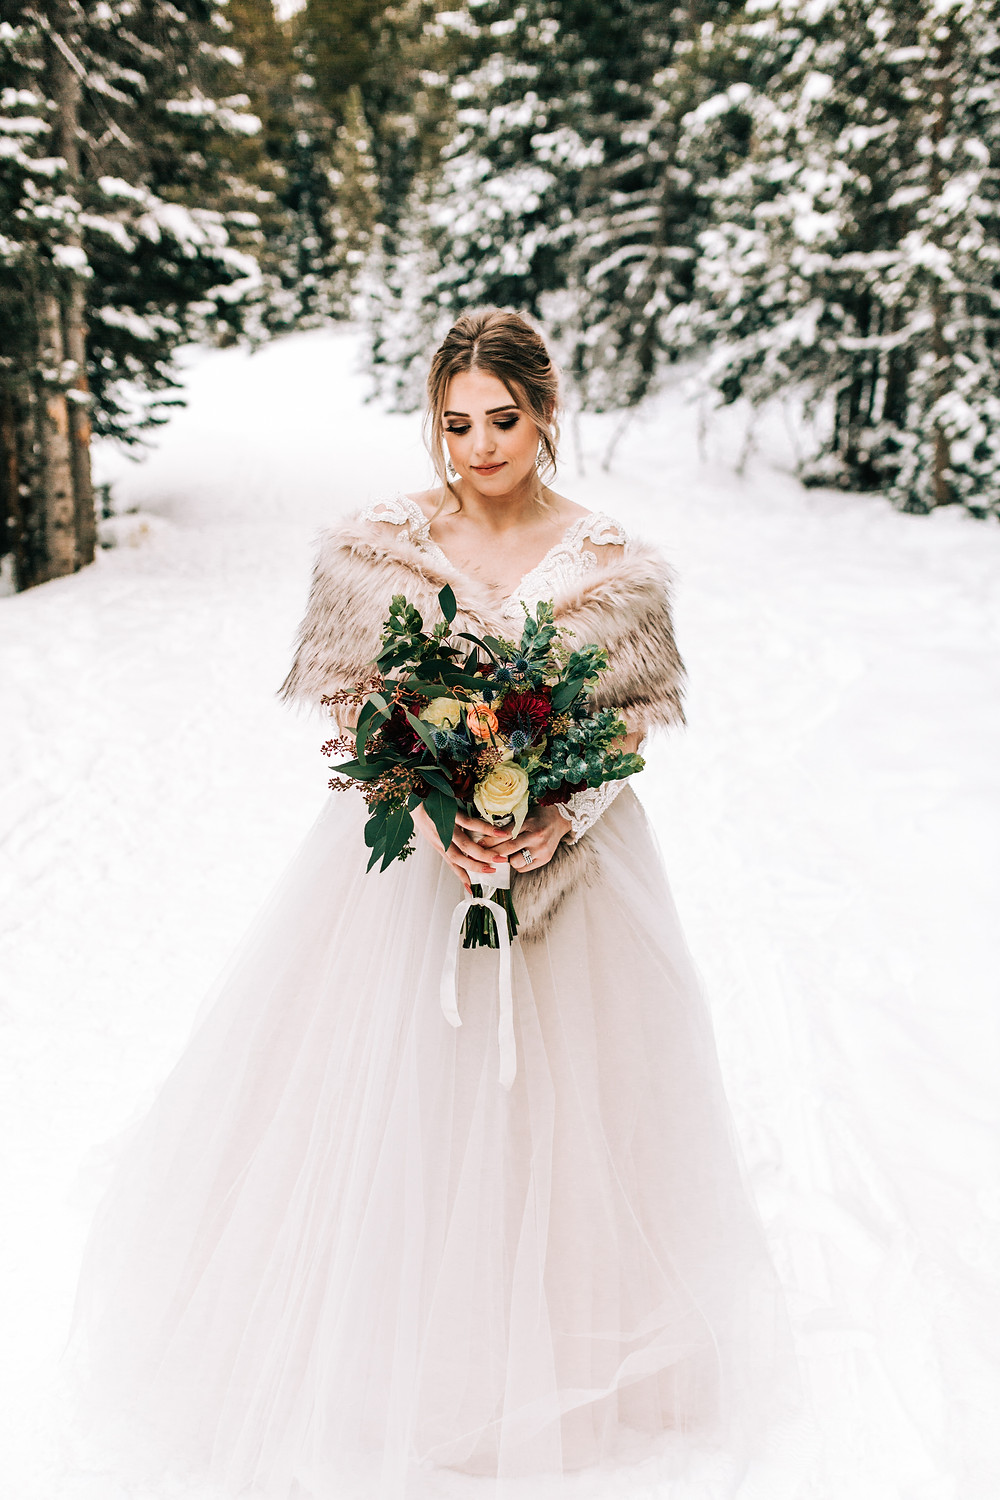 Breckenridge Winter Wedding - The Lodge at Breckenridge Wedding - Bride